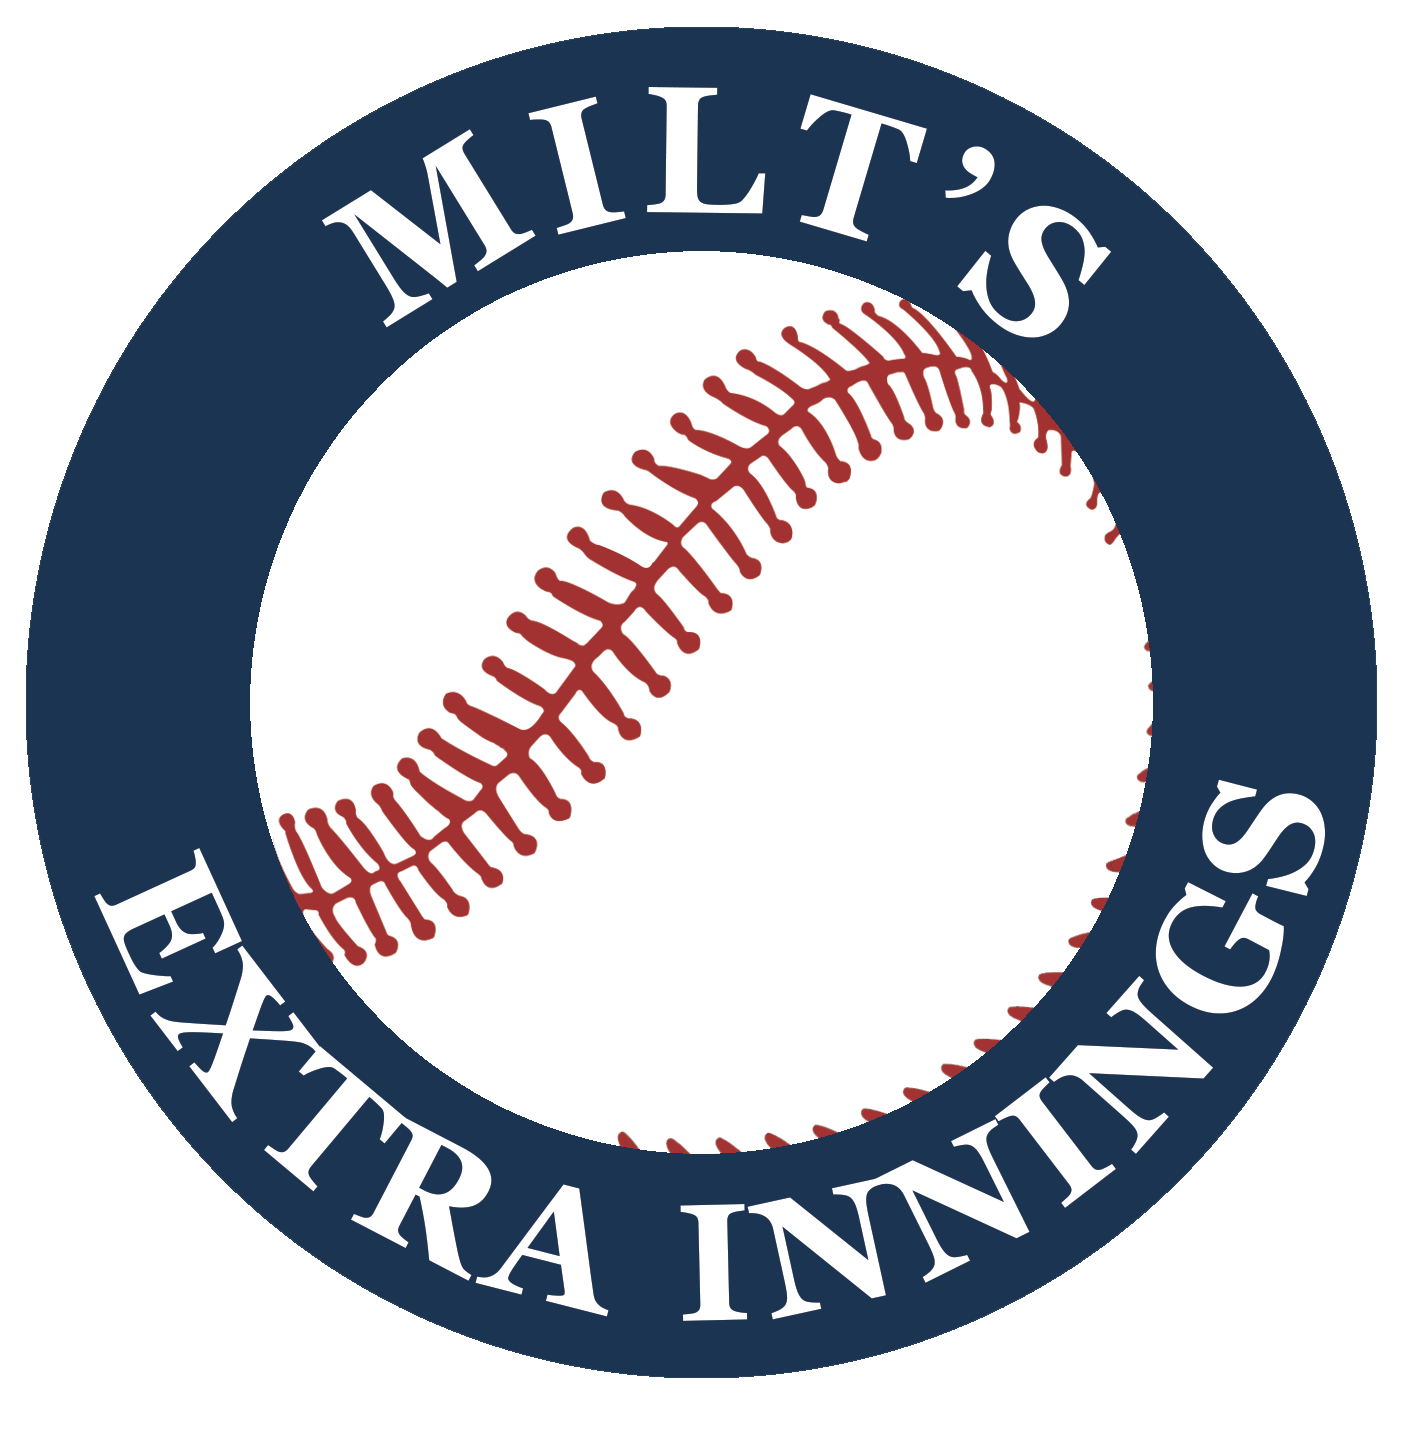 Baseball inning clipart png transparent Milt's Extra Innings png transparent